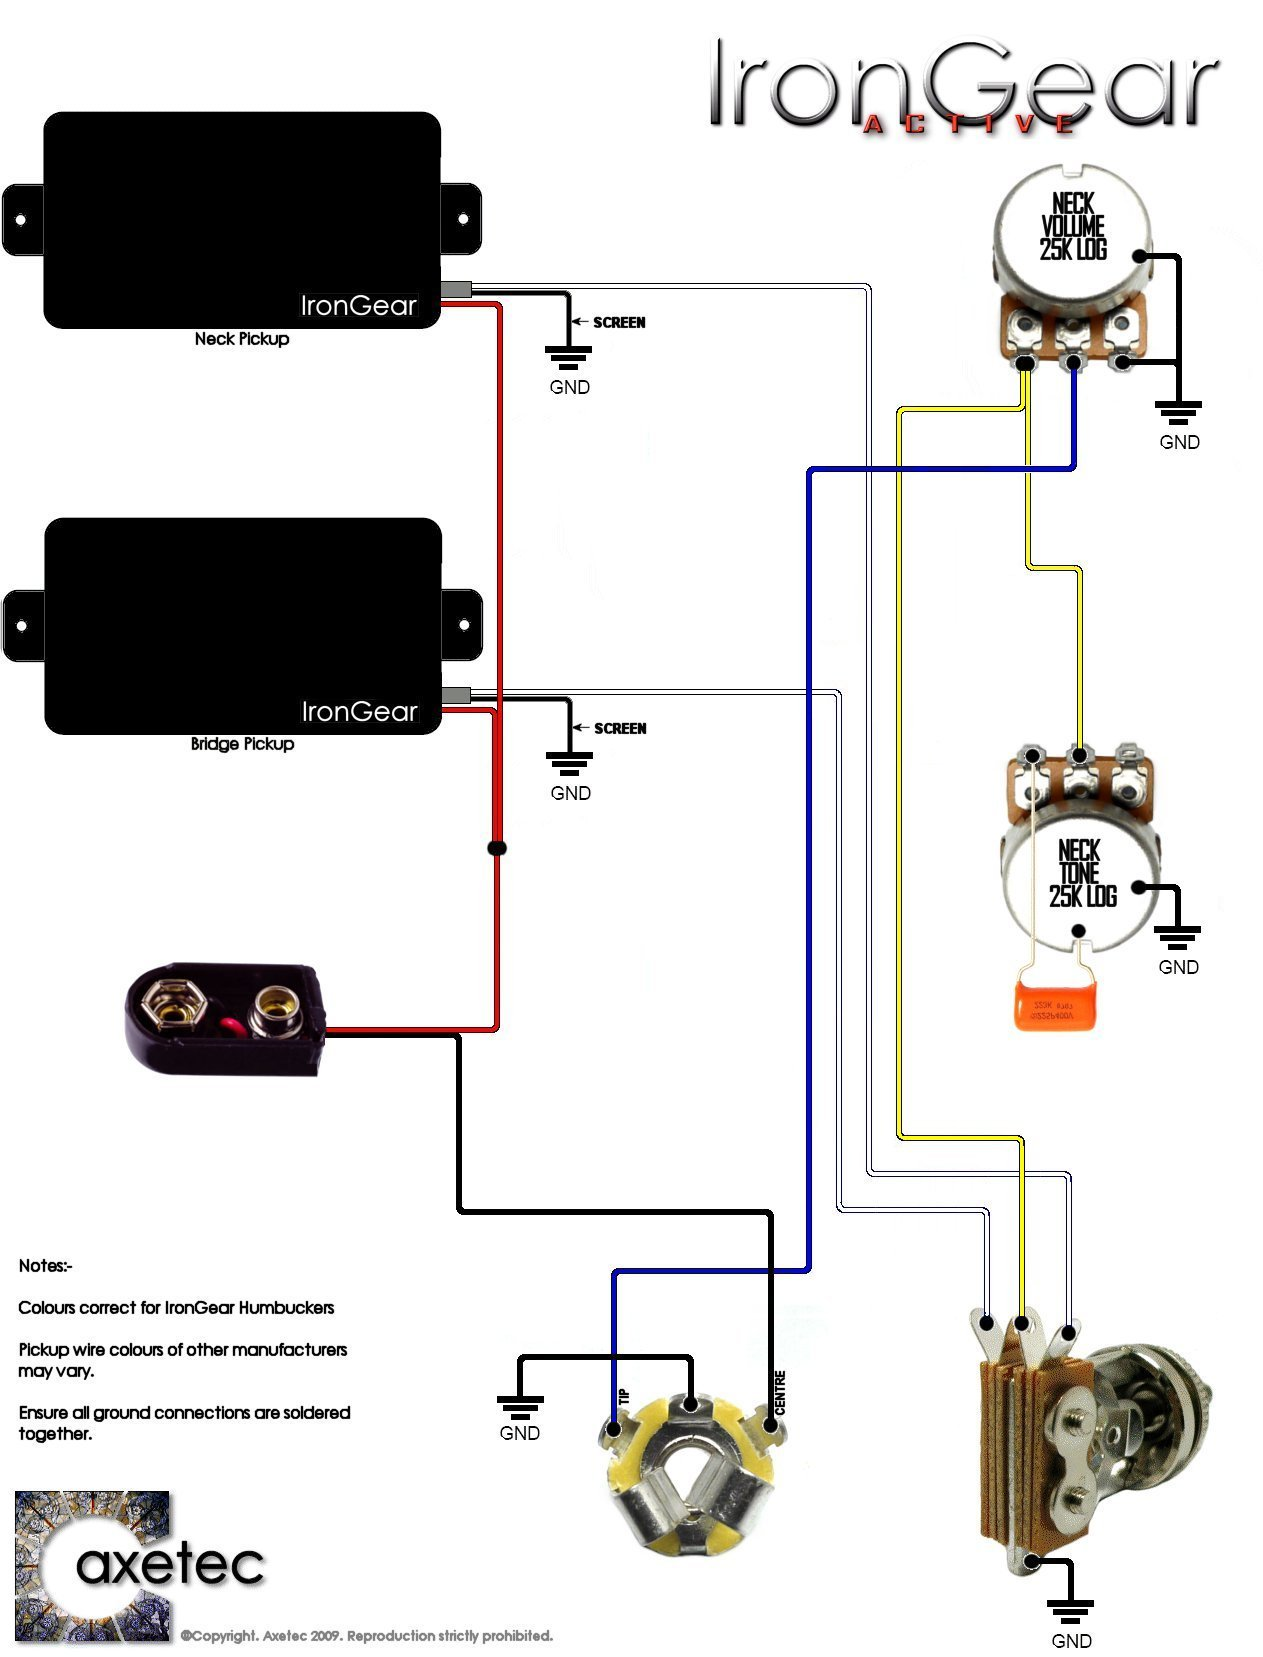 mij le paul wiring diagram hight resolution of mij les paul wiring diagram 2 x active humbuckers 1 volume 1 tone